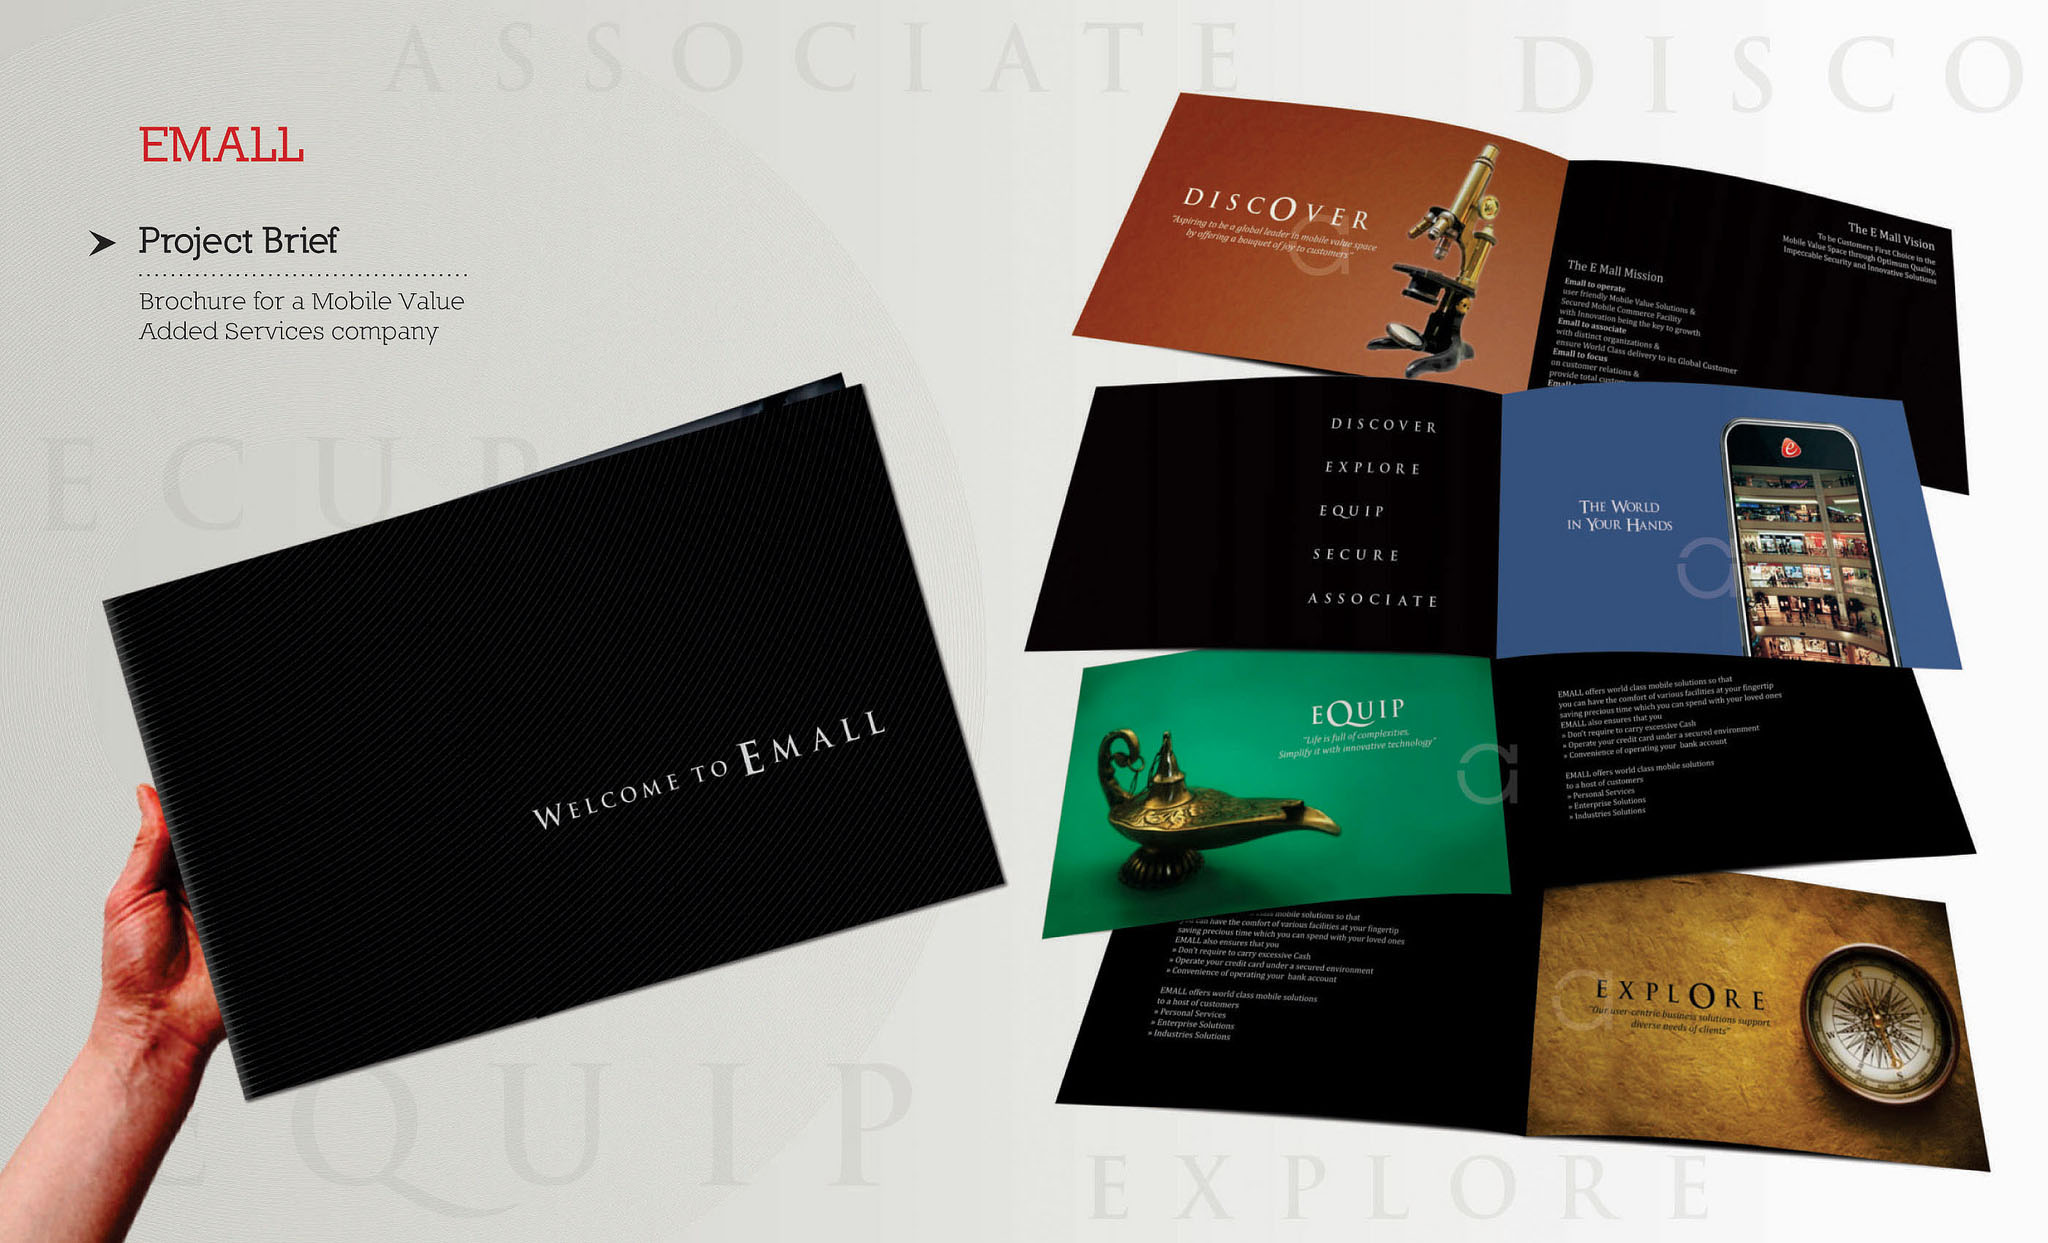 brochure design for mobile value added company - Booklet Design Ideas